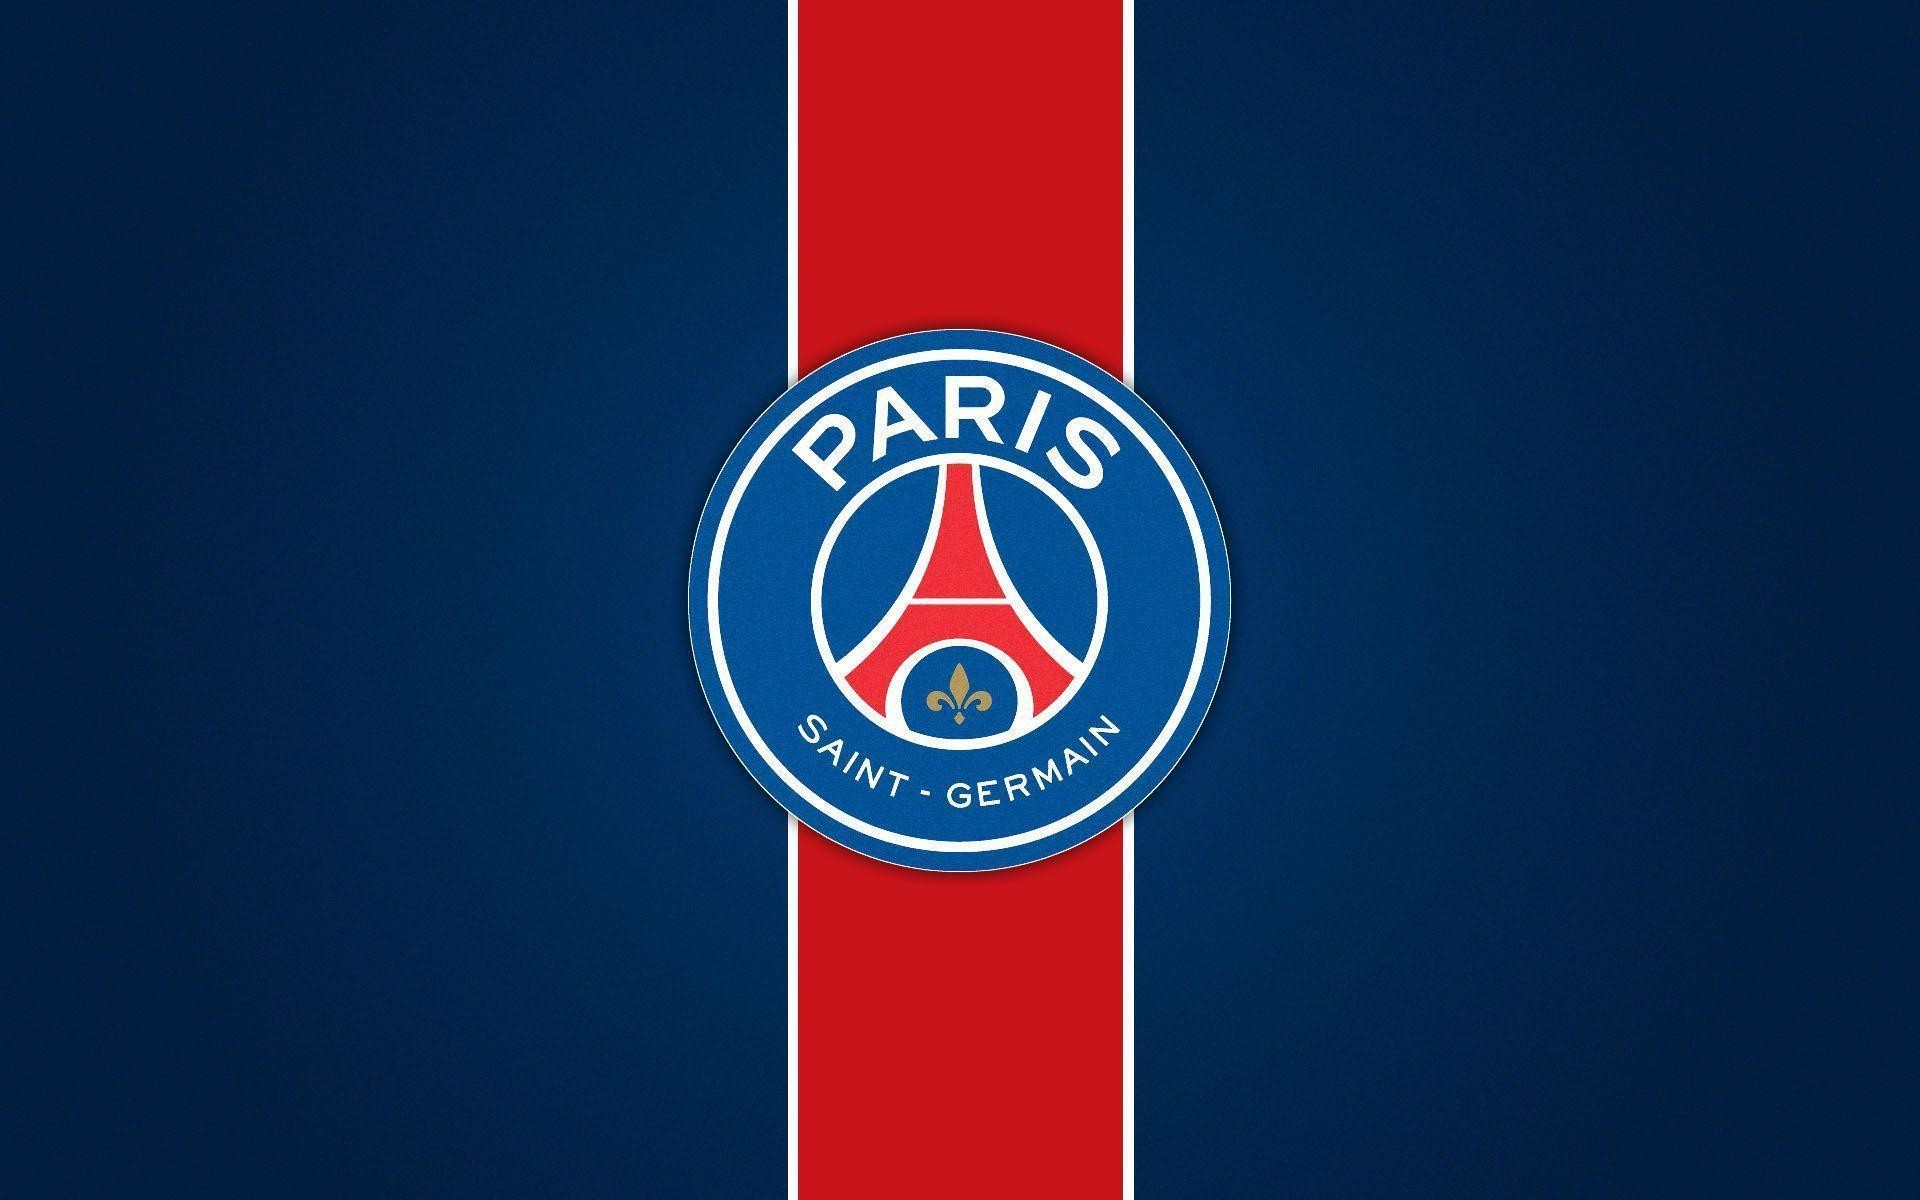 1920x1200 Paris Saint Germain